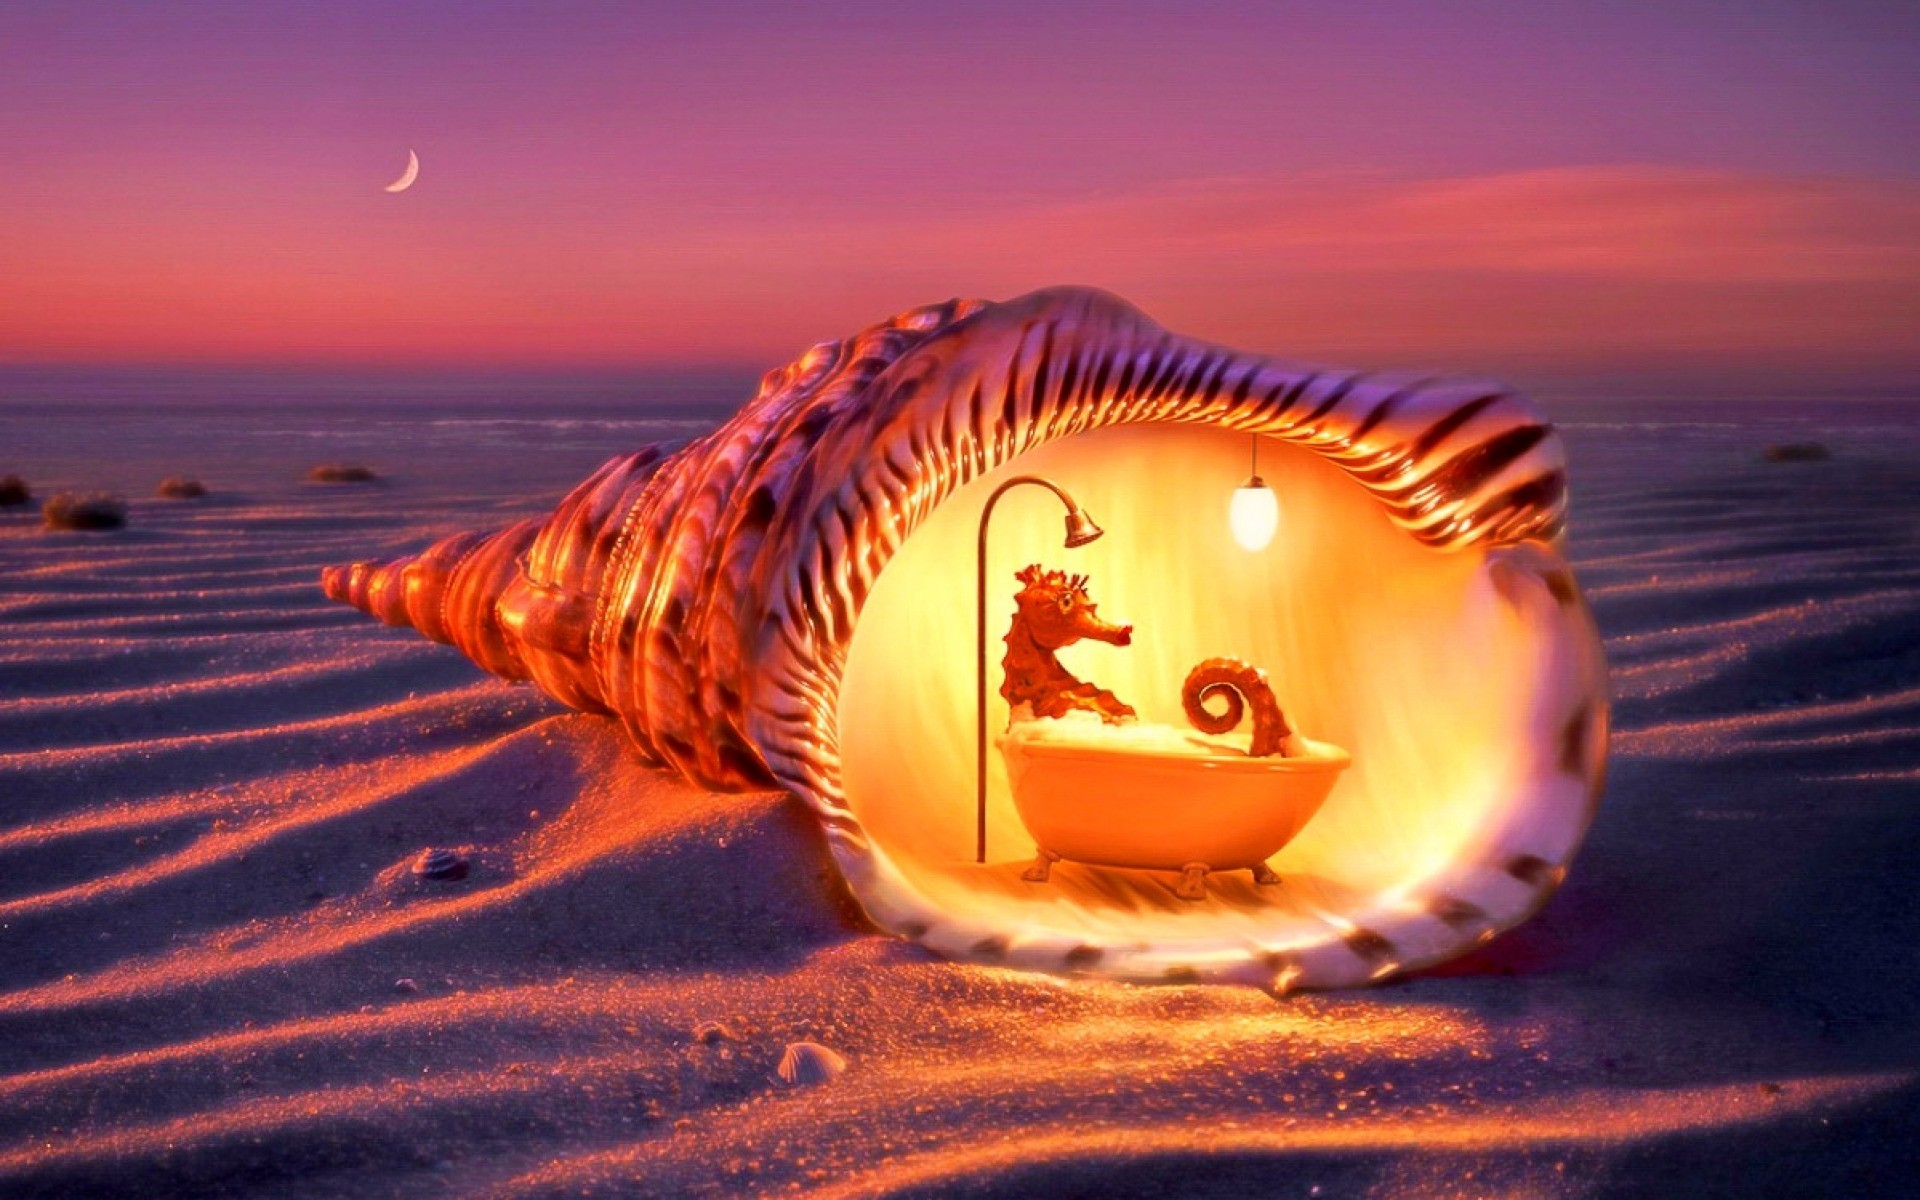 Res: 1920x1200, Bild: Sea Horse Entspannungsbad wallpapers and stock photos. Â«